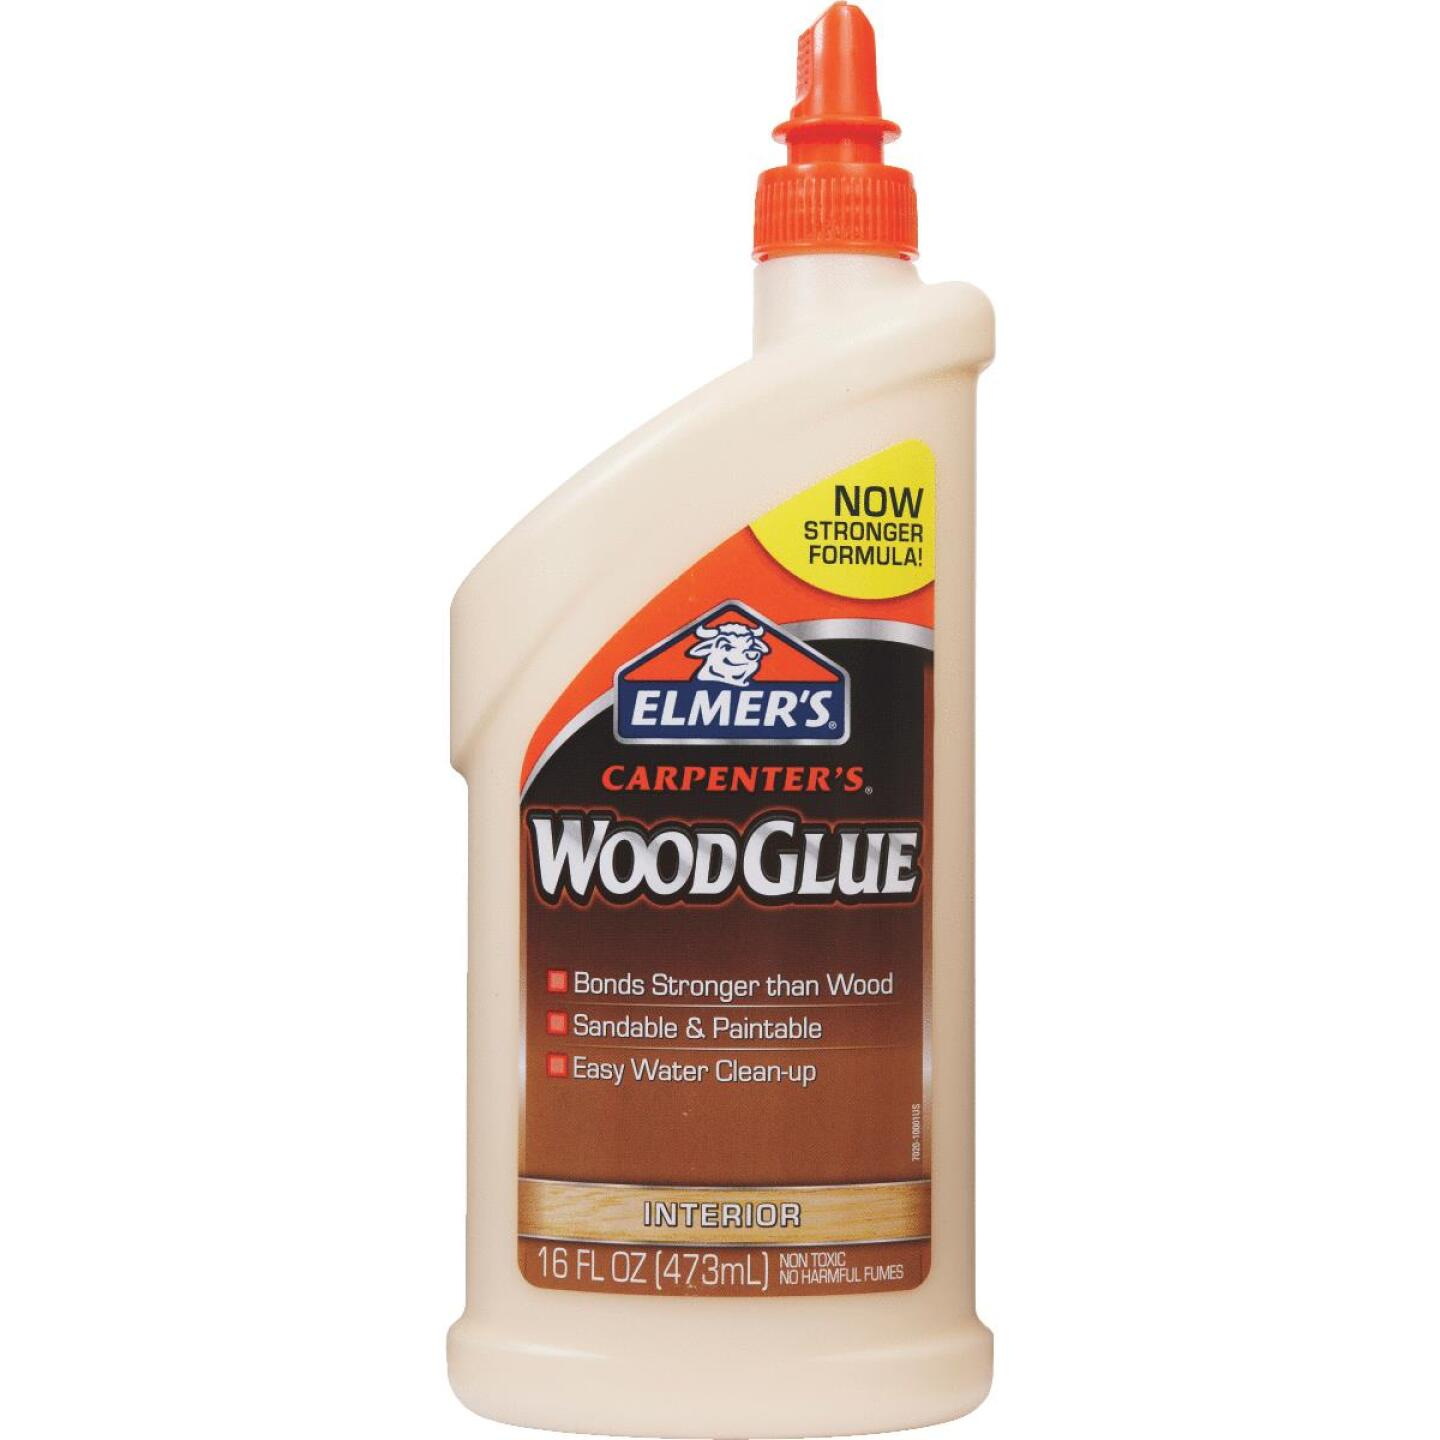 Elmer's Carpenter's 16 Oz. Wood Glue Image 3